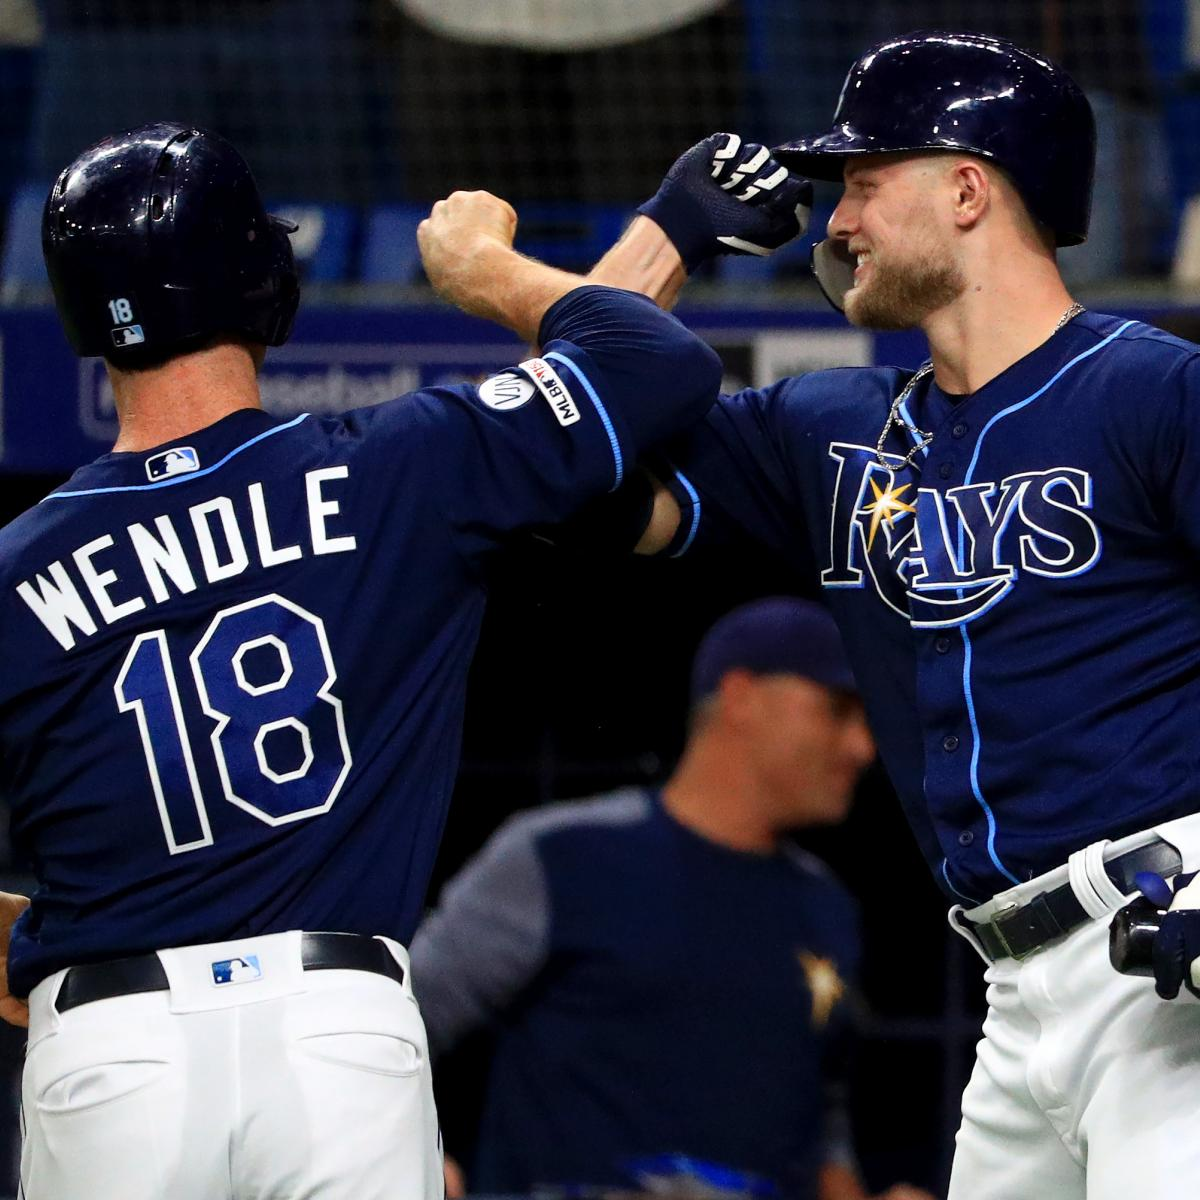 Rays Clinch 2019 MLB Playoff Spot, Will Play A's In AL